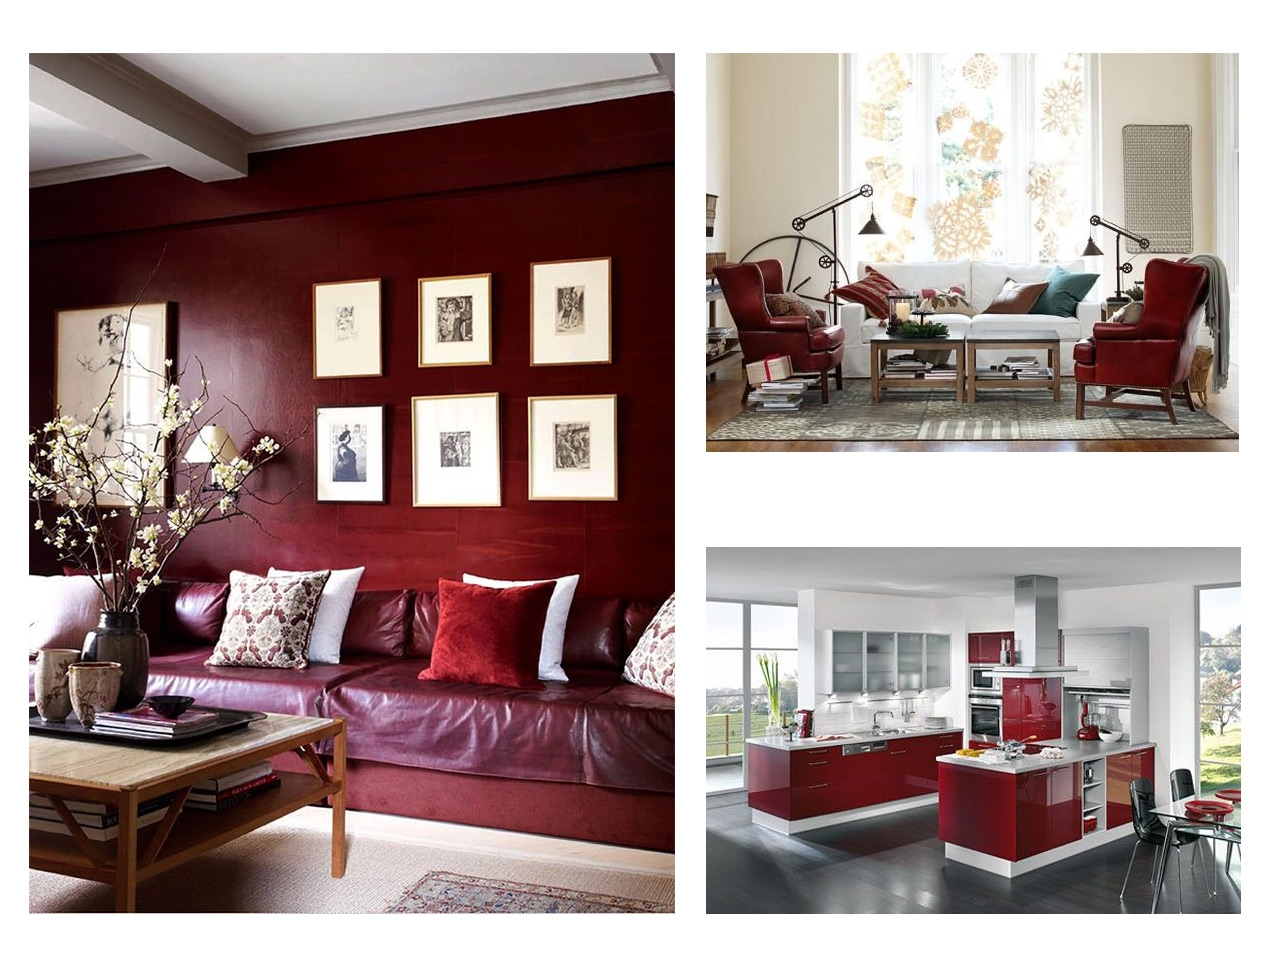 Pintura Granate Tendencias Decoración 2015 Los Rojos Intensos